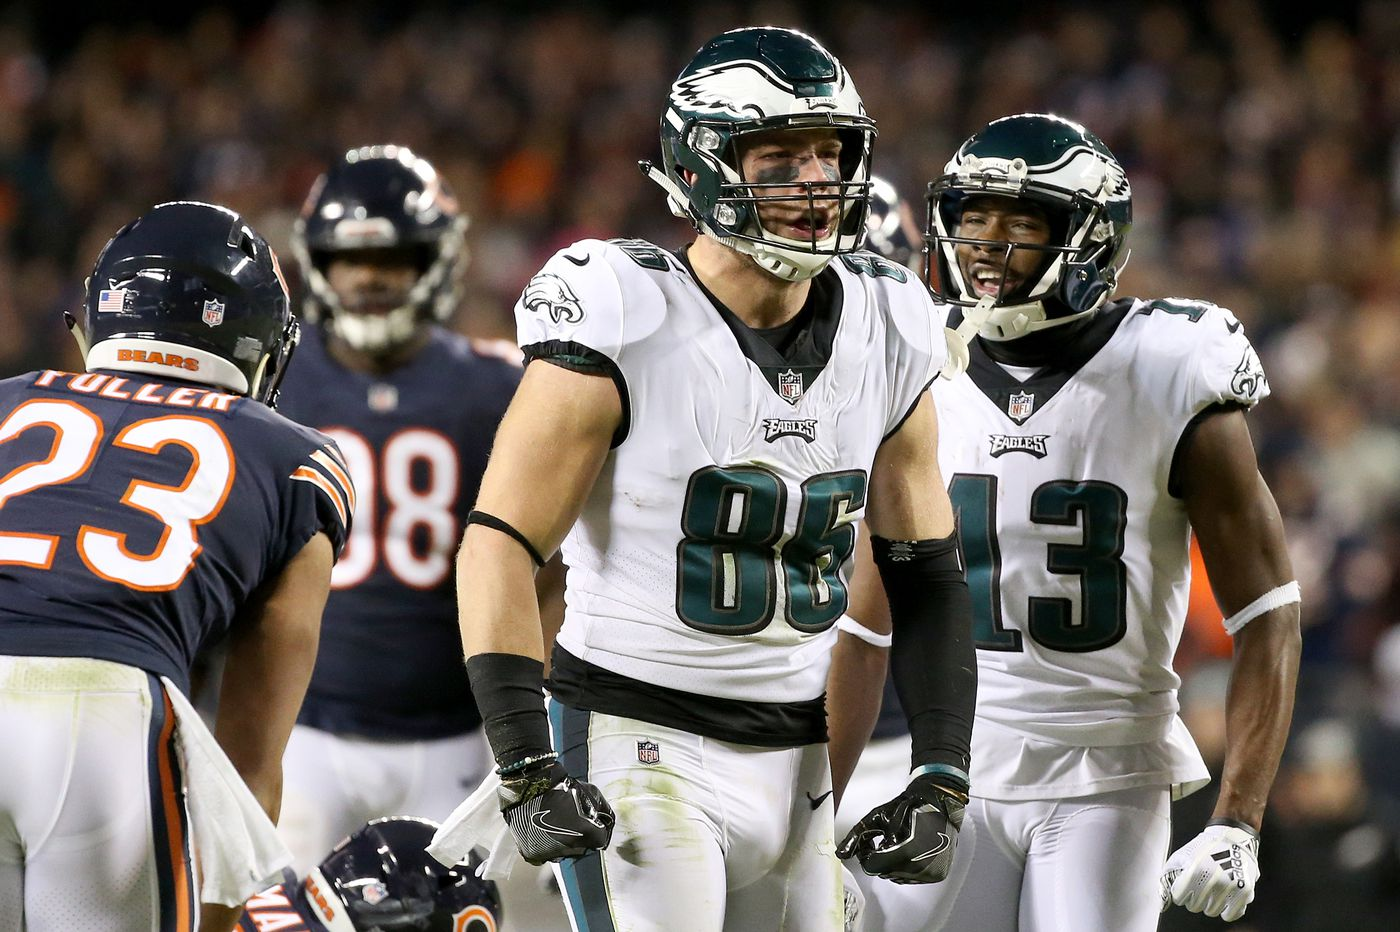 The Eagles are embracing their underdog status again, and that makes them dangerous | Mike Sielski